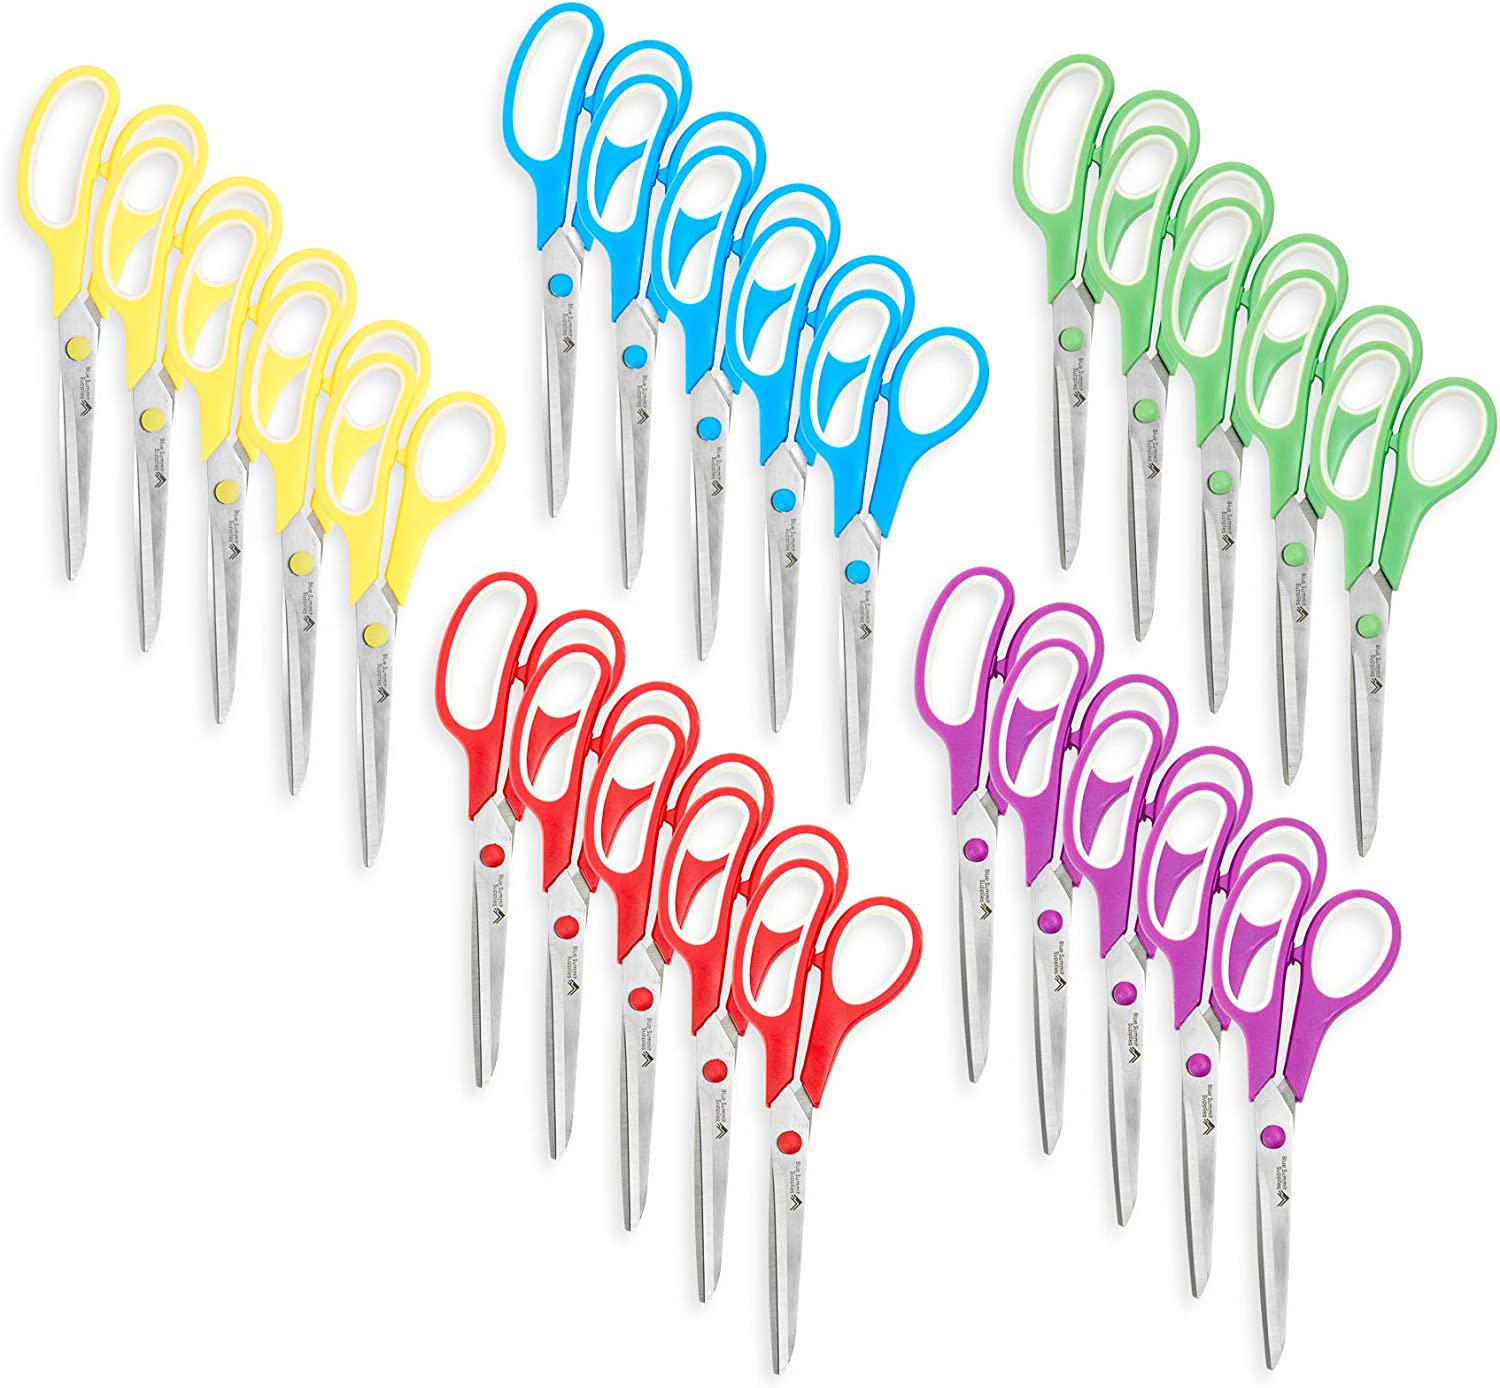 Blue Summit Supplies Multi Purpose Scissors, 8 Inch Household Shears with Comfort Grip, Sharp Scissors for Craft or Office, Assorted Colors, 30 Pack